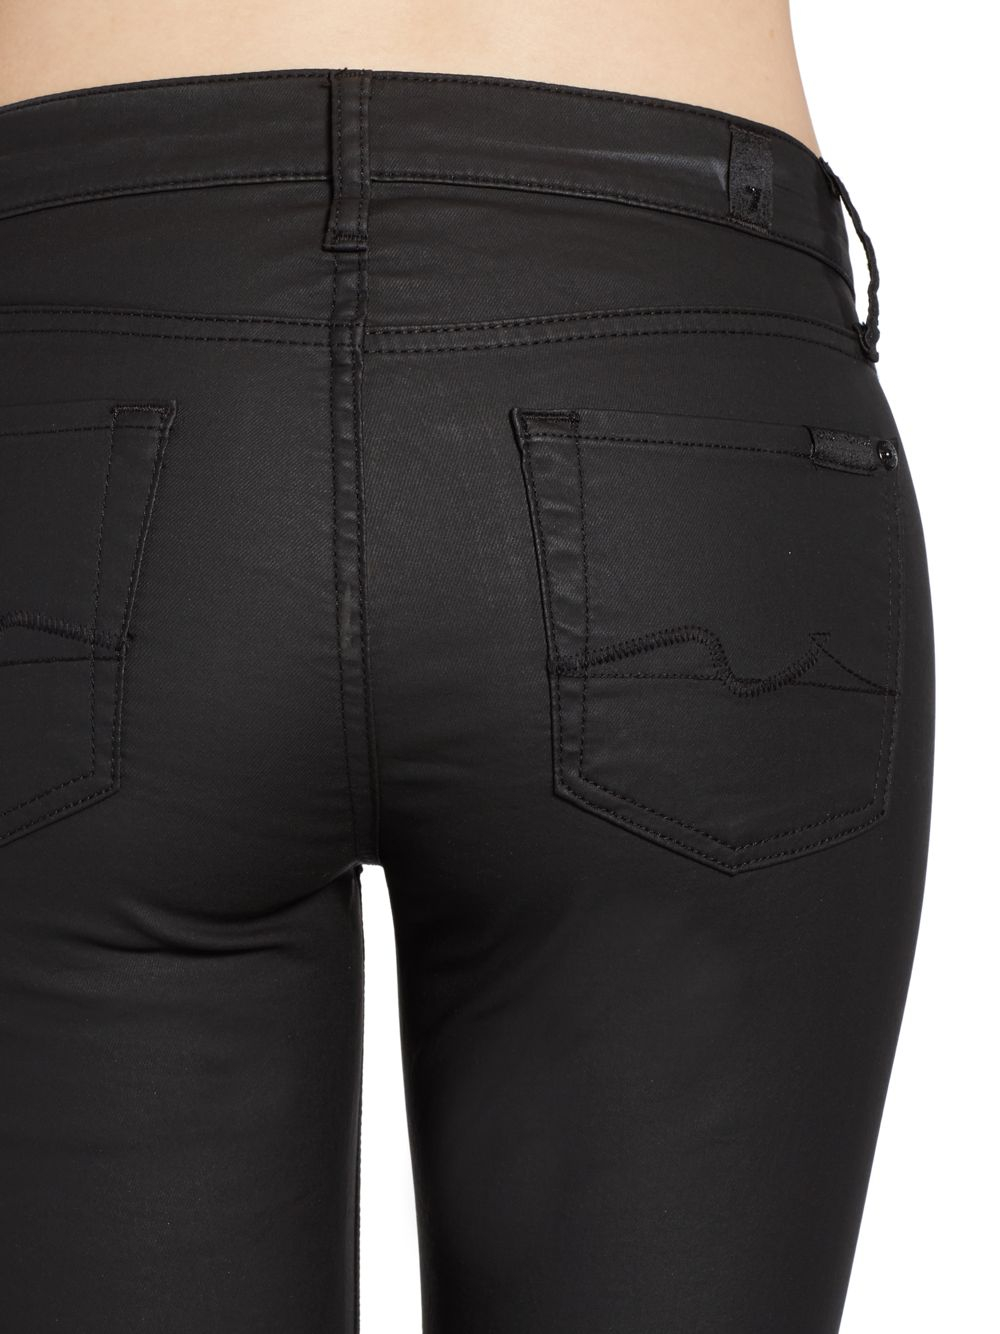 7 for all mankind Gwenevere Coated Denim Skinny Jeans in Black | Lyst